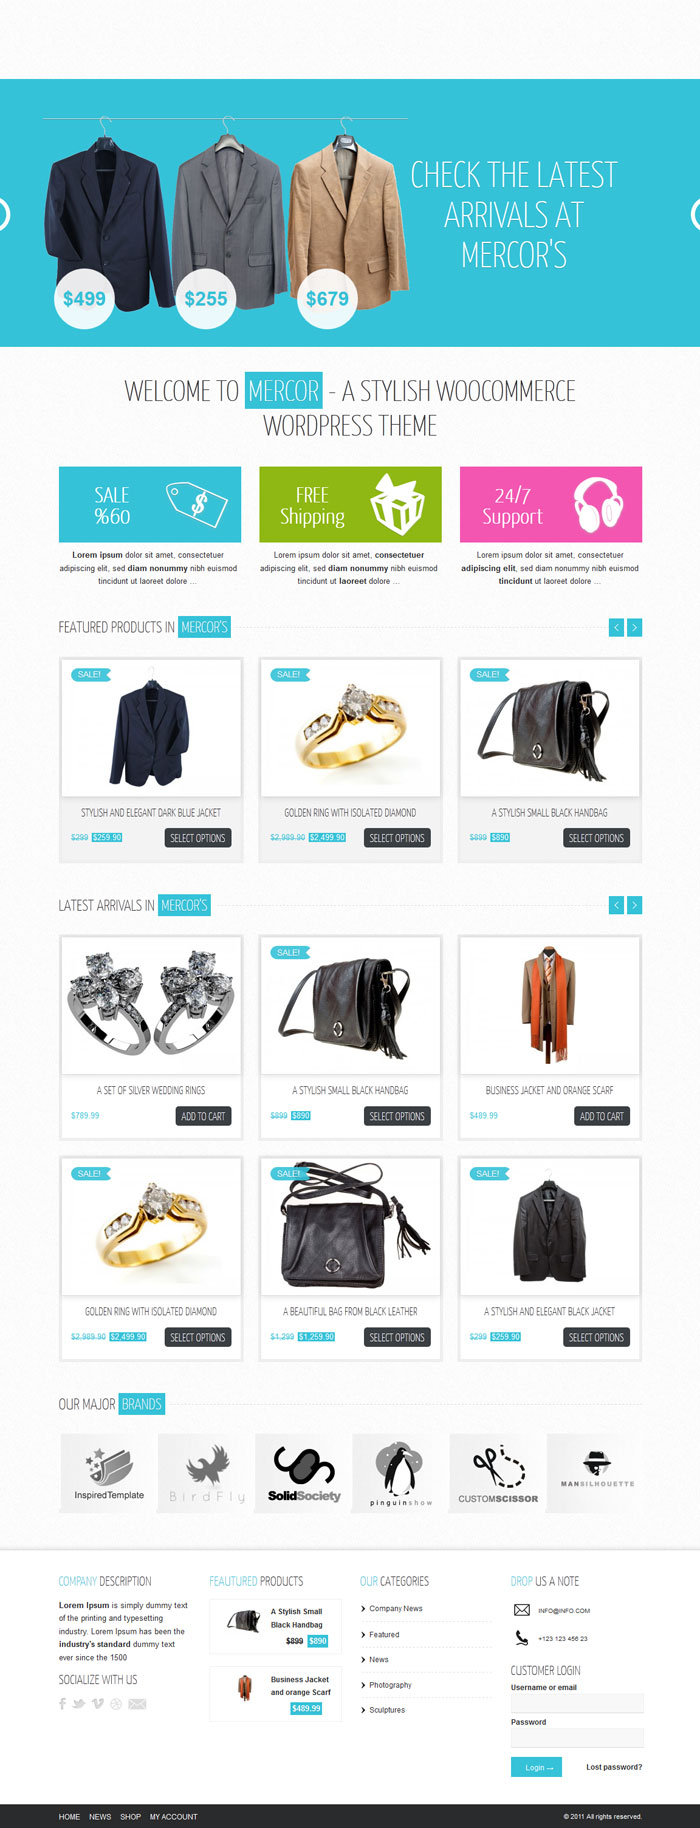 Mercor WordPress Theme Design